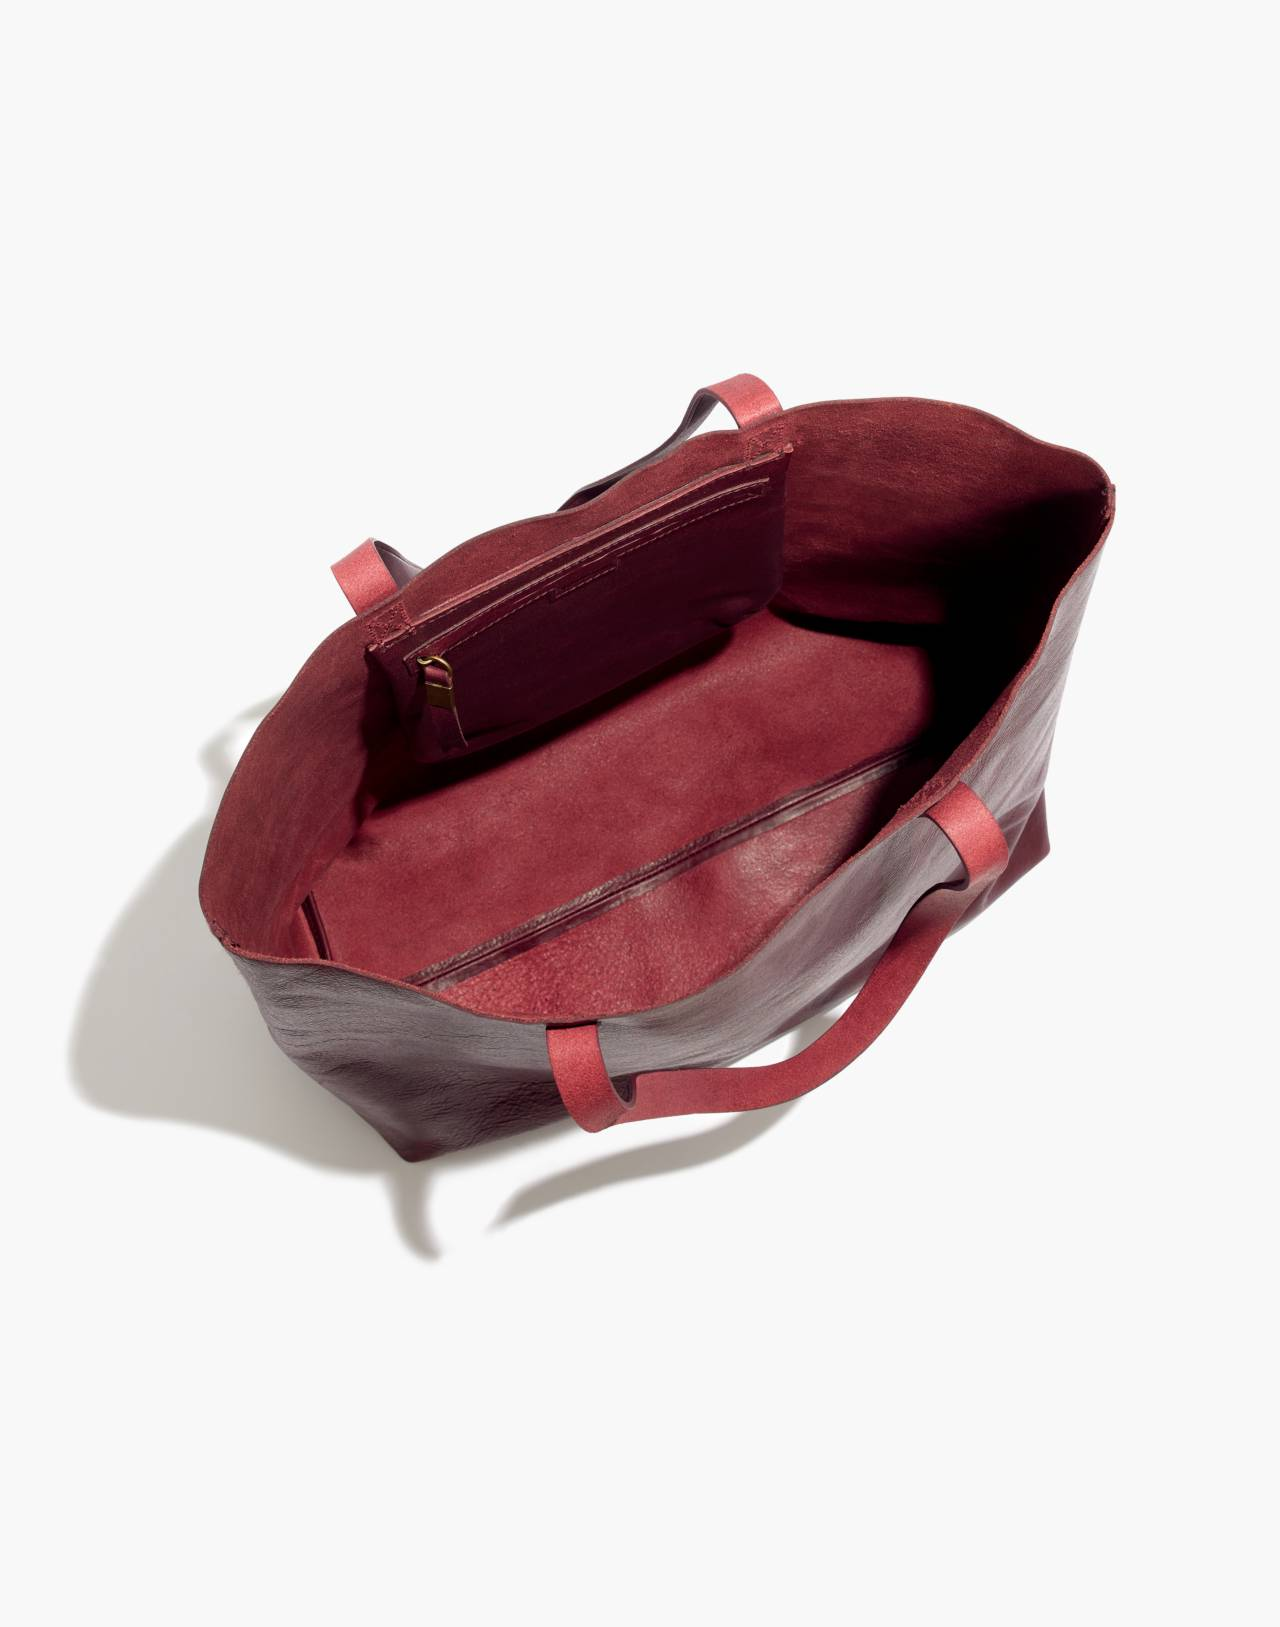 The Transport Tote in dark cabernet image 2